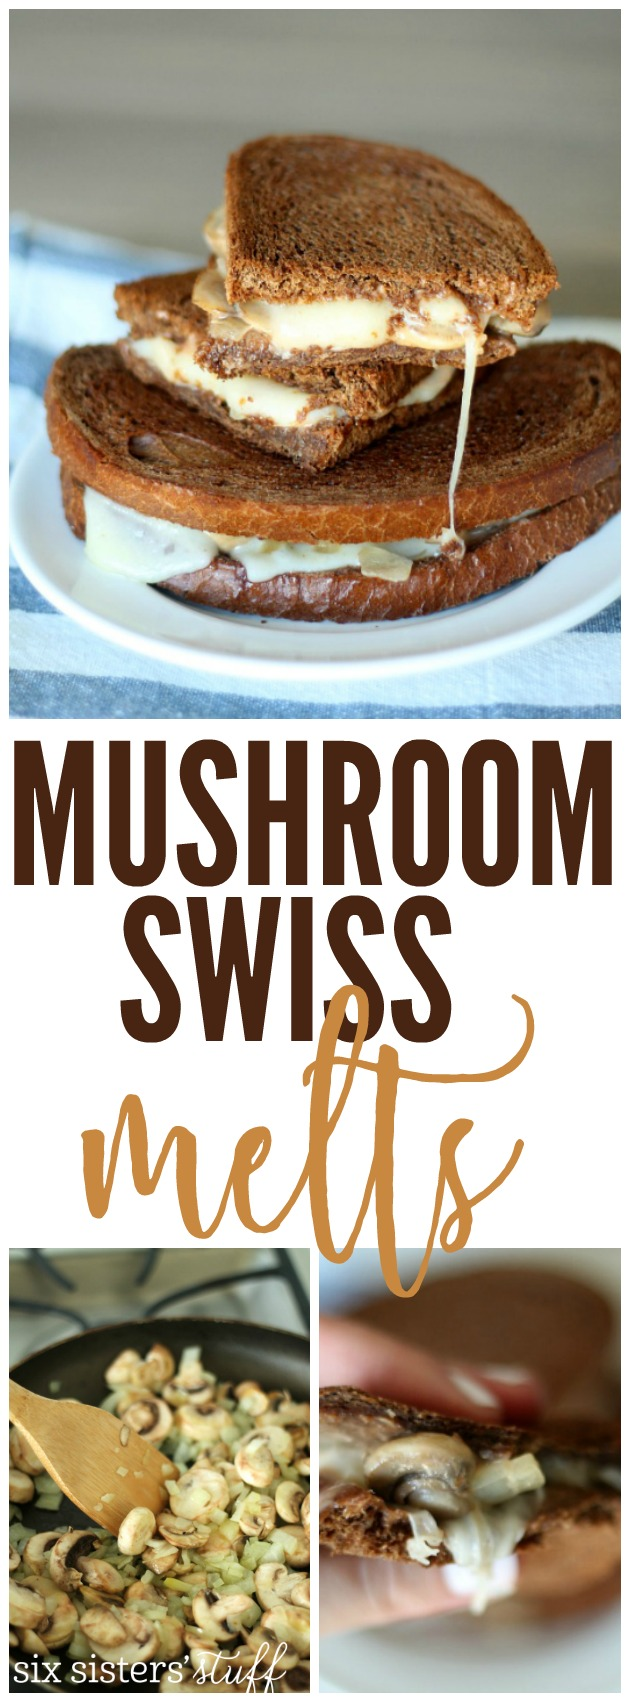 Mushroom Swiss Melts from SixSistersStuff.com. These are so easy to make and SO DELICIOUS!